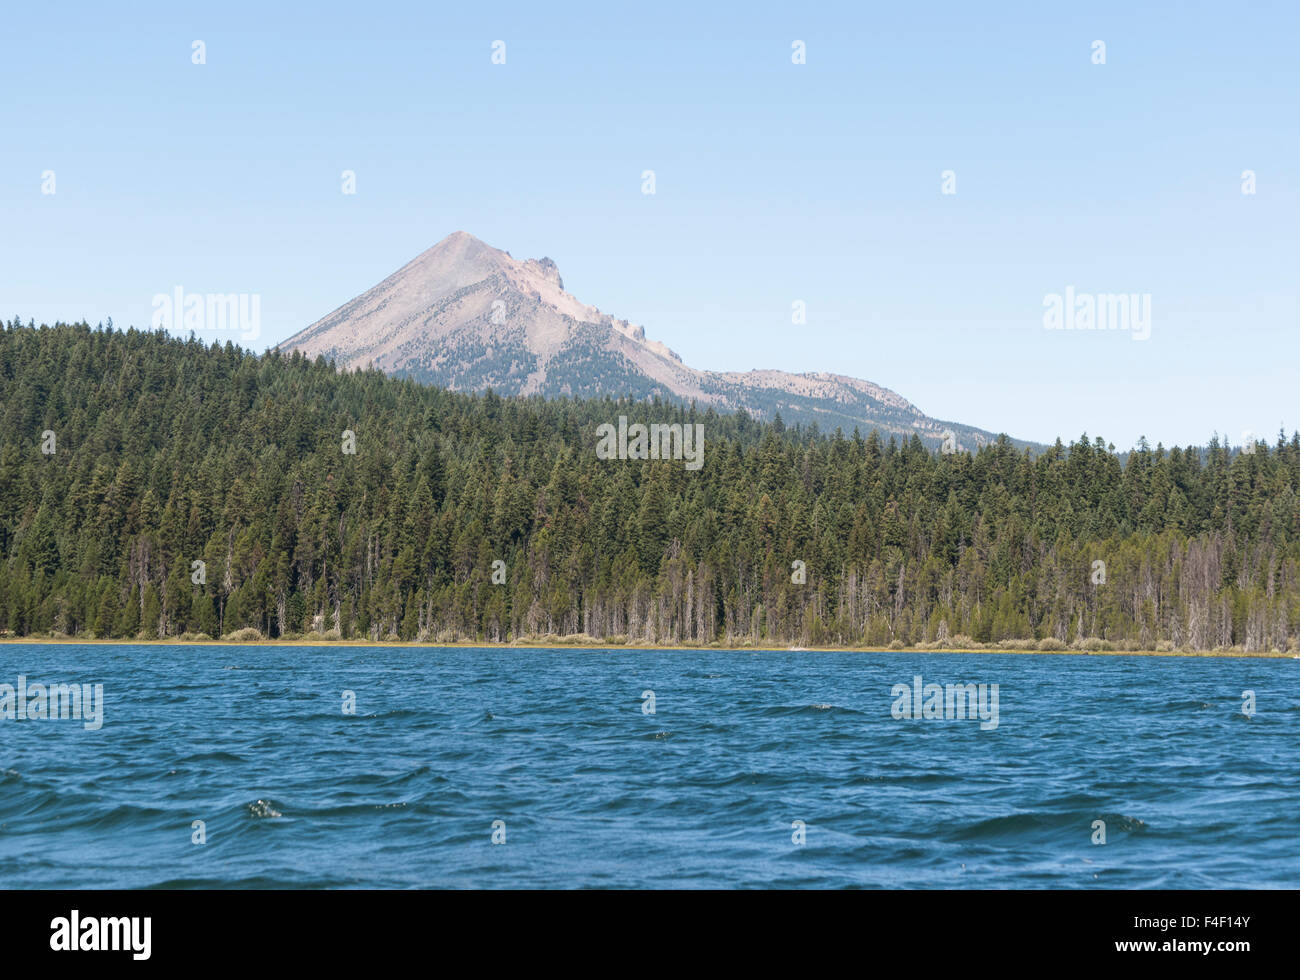 View of lush conifer forest and the rugged peaks of the Cascade Mountains, Oregon's Lake of the Woods. - Stock Image